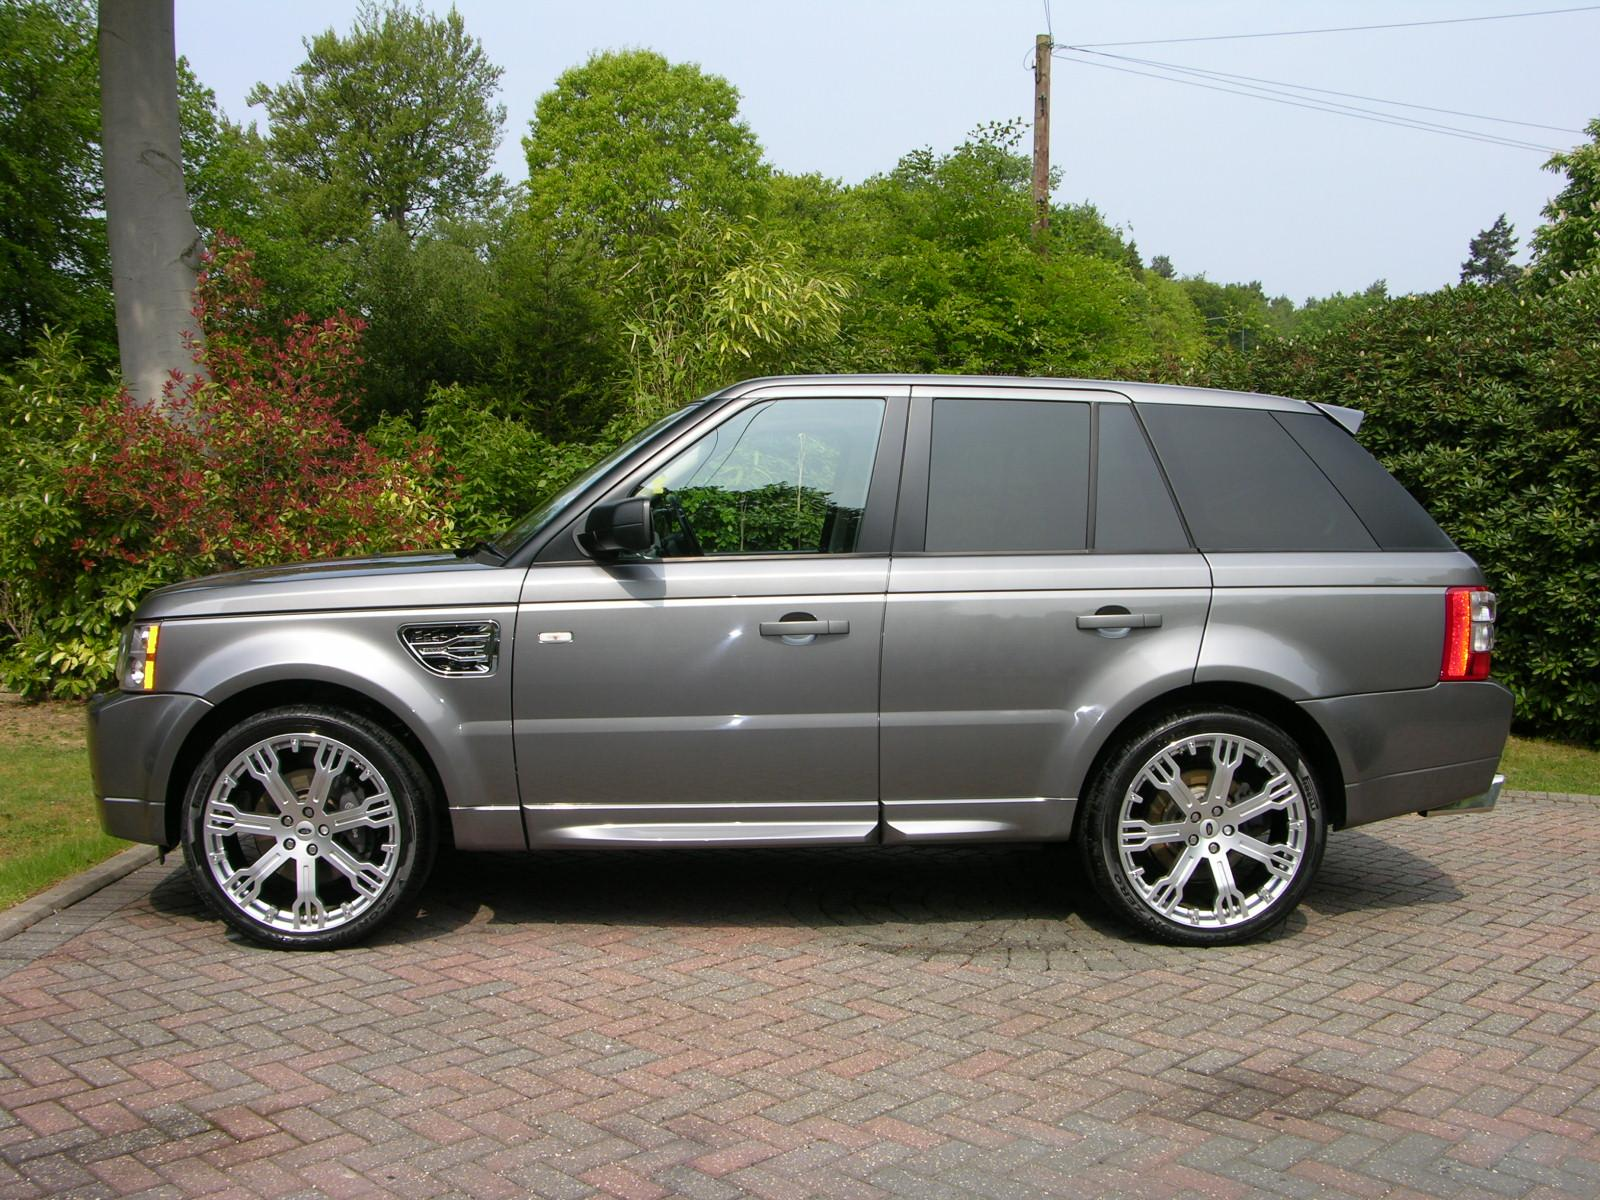 Range rover on 28s submited images